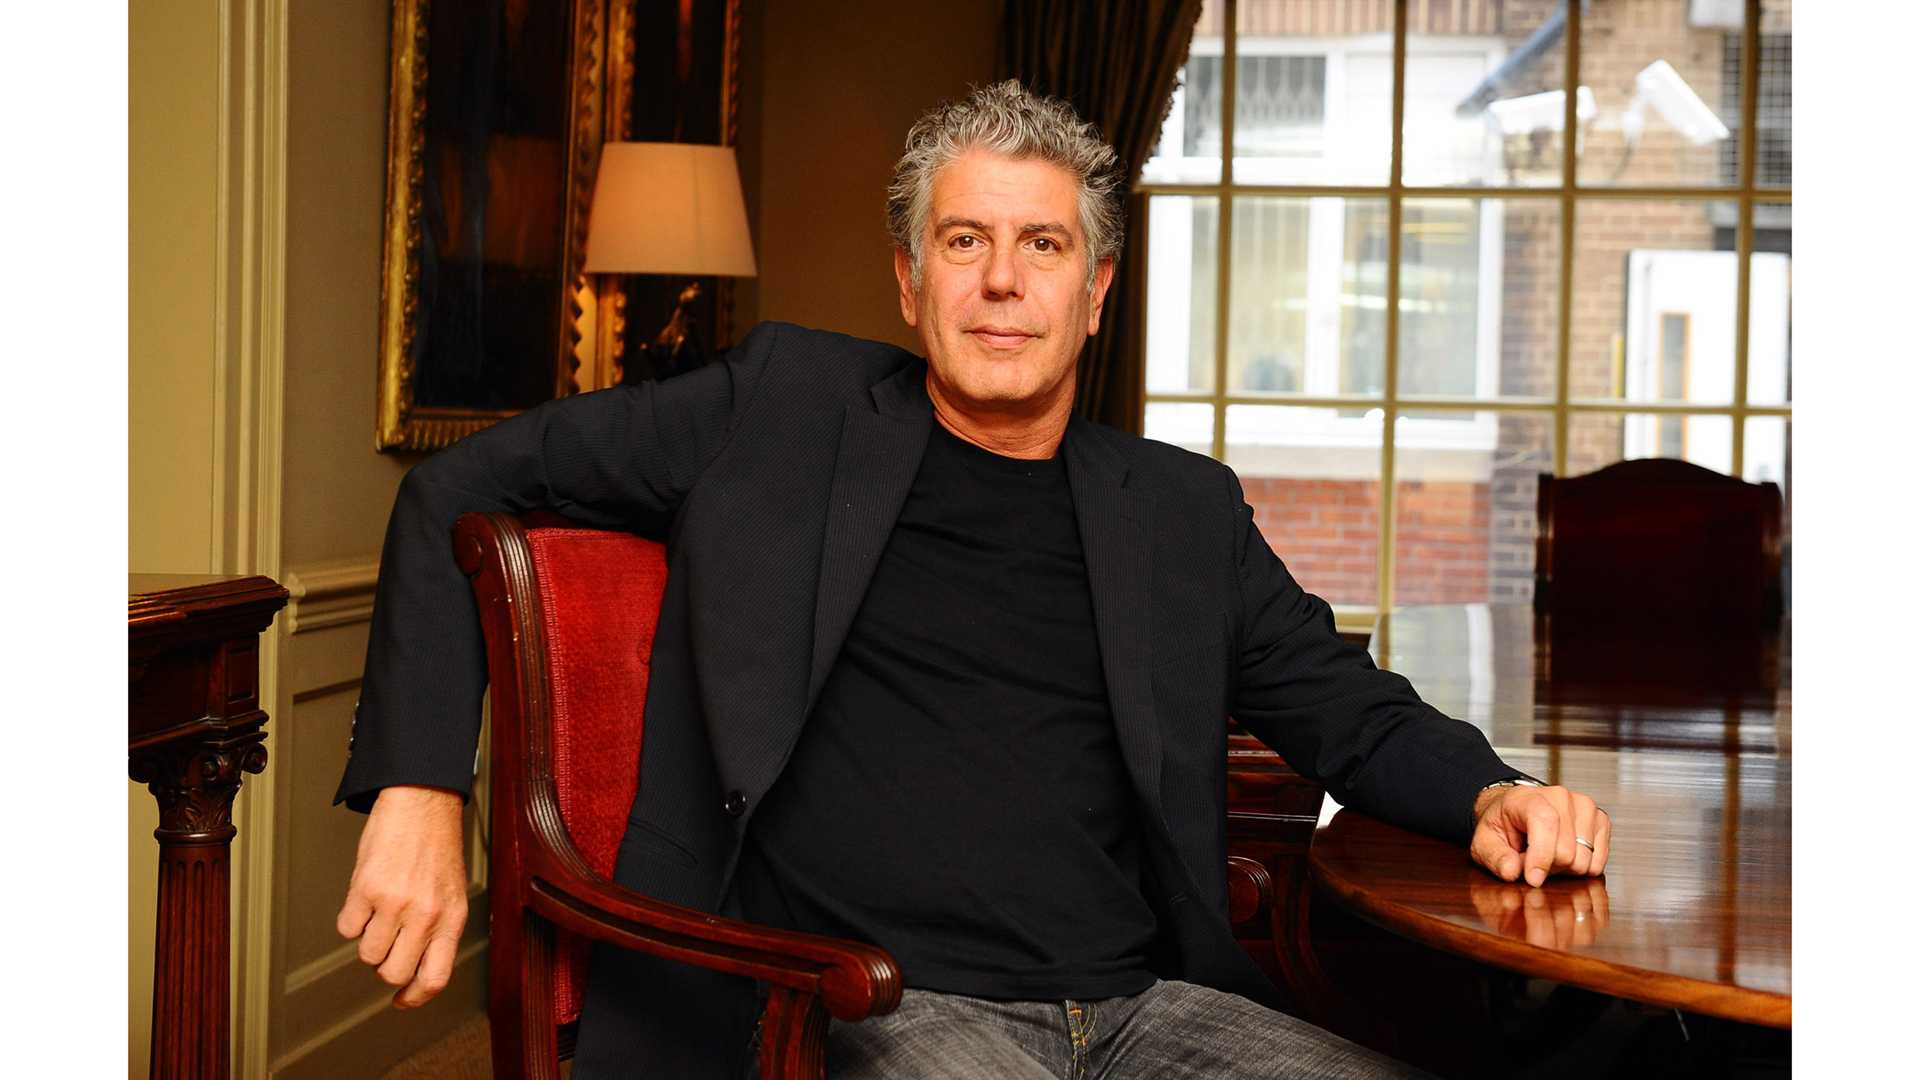 Anthony Bourdain is photographed at the Hazlitts club in London on Sept. 2, 2010. Bourdain was found dead in his hotel room of a suicide at age 61. (Ian West/PA Wire/Abaca Press/TNS)